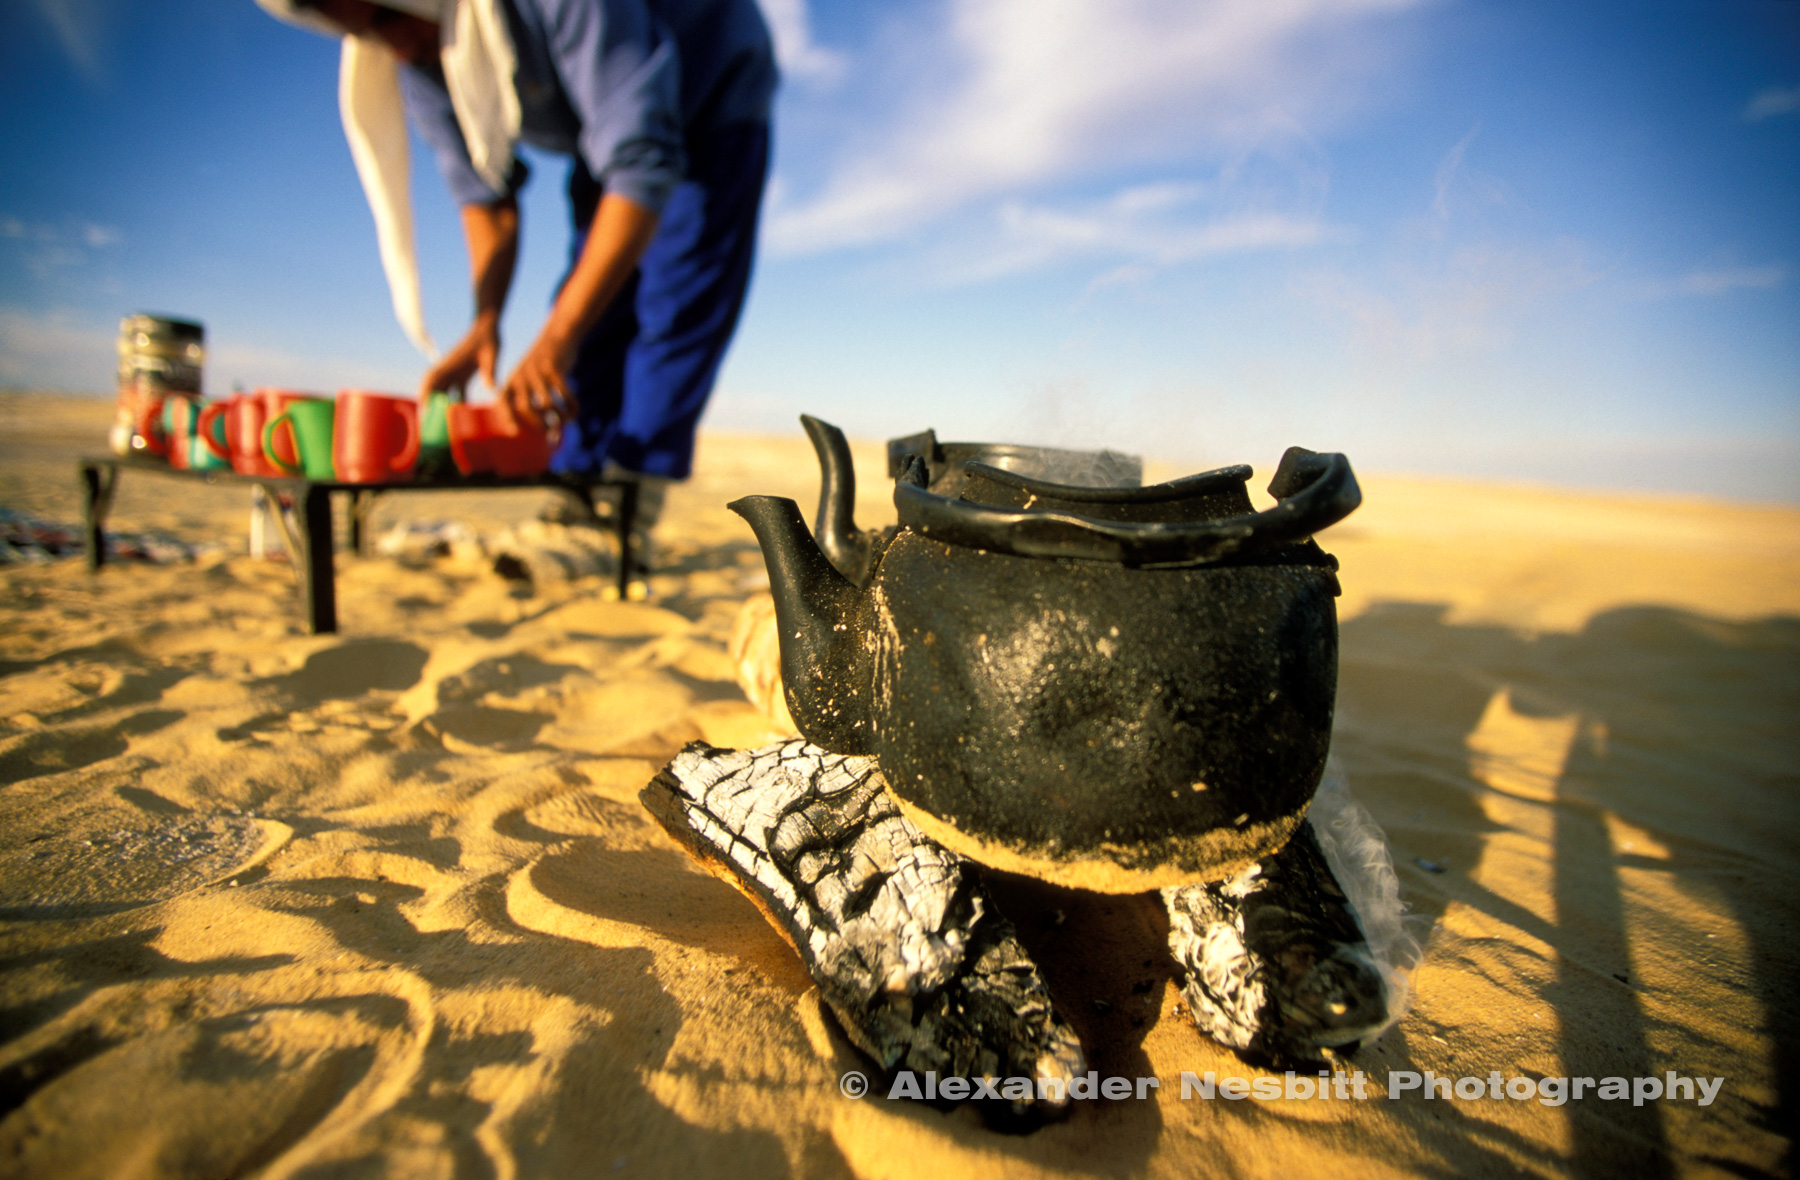 Trek guide Mohamad prepares tea in a pile of plastic cups with banged up blackened kettles boiling on a tiny, wood saving fire.  Camel trek between Farafra and Dakhla oasis, Egyptian Western desert